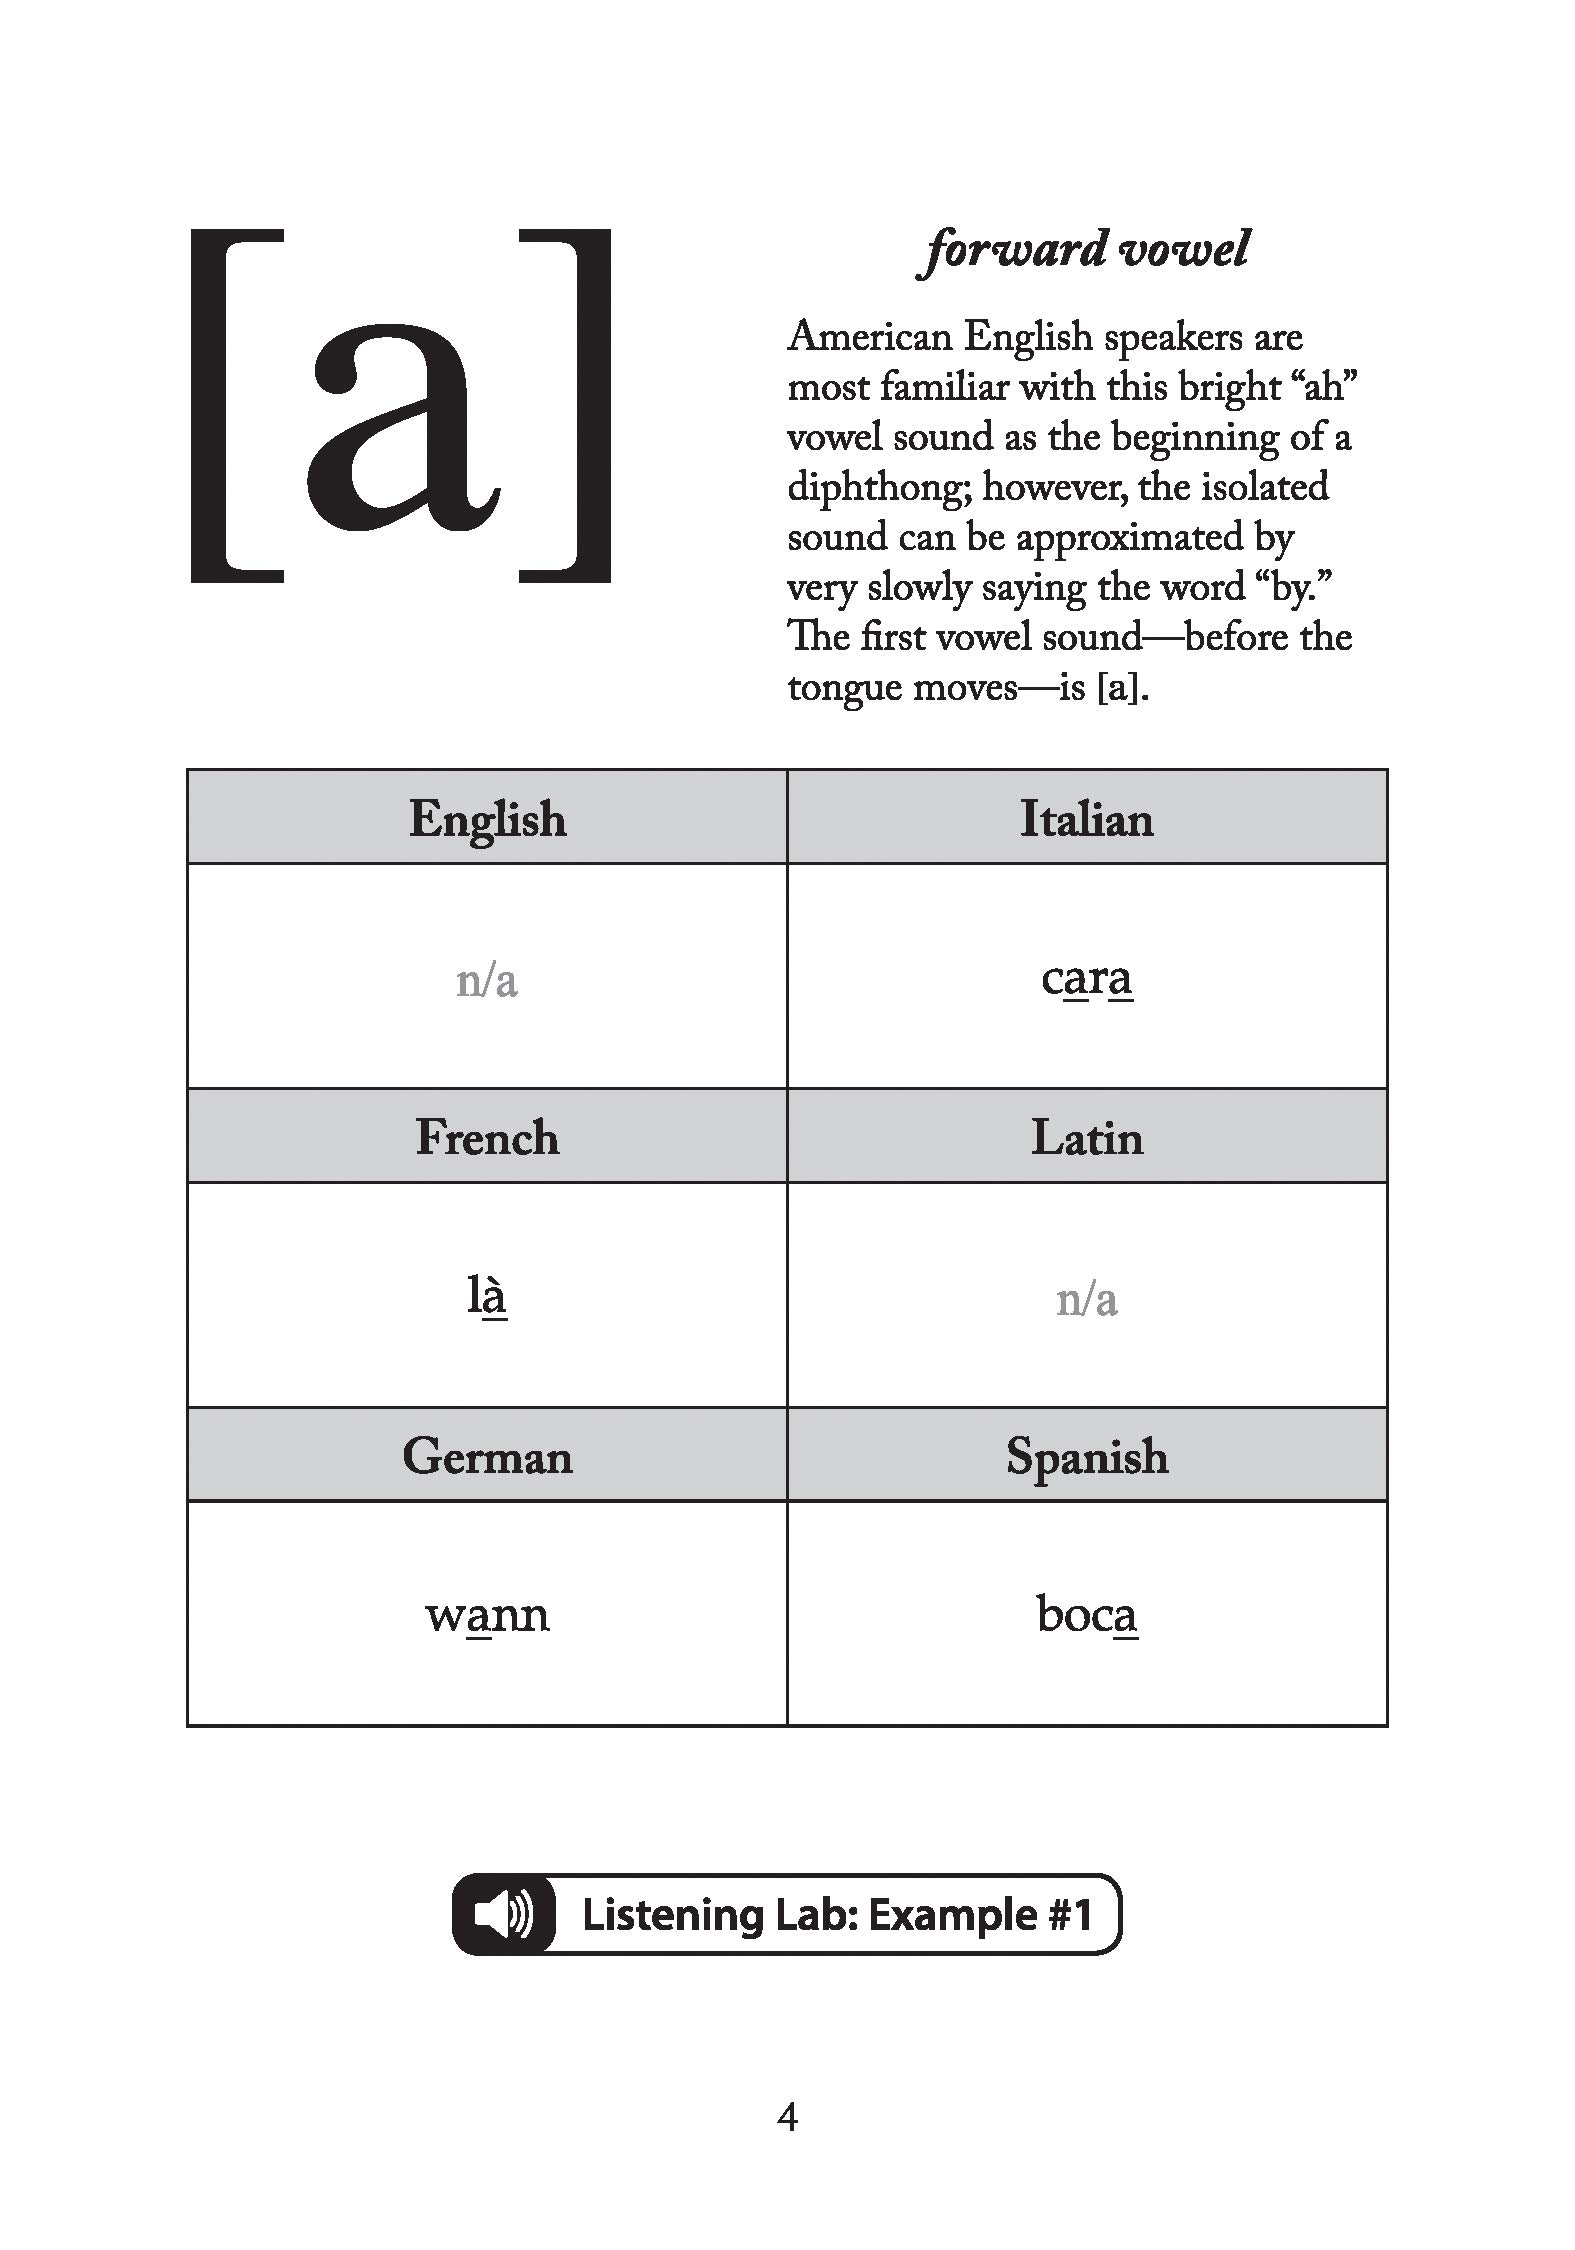 Alfred S Ipa Made Easy A Guidebook For The International Phonetic Alphabet Wentlent Anna 9781470615611 Amazon Com Books